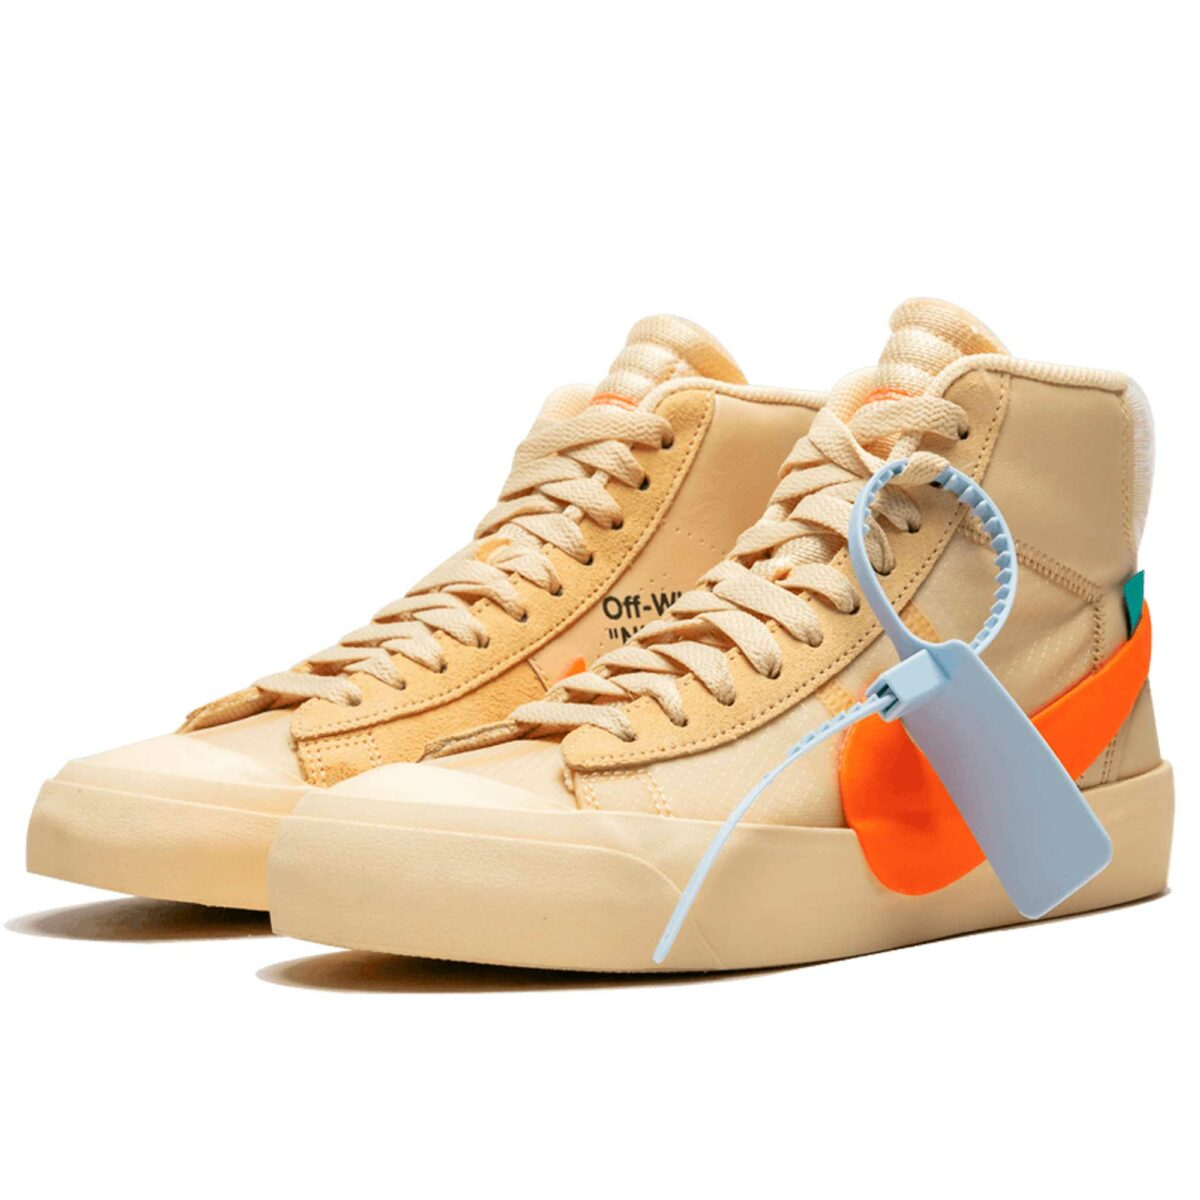 nike blazer mid all hallows eye aa3832_700 купить